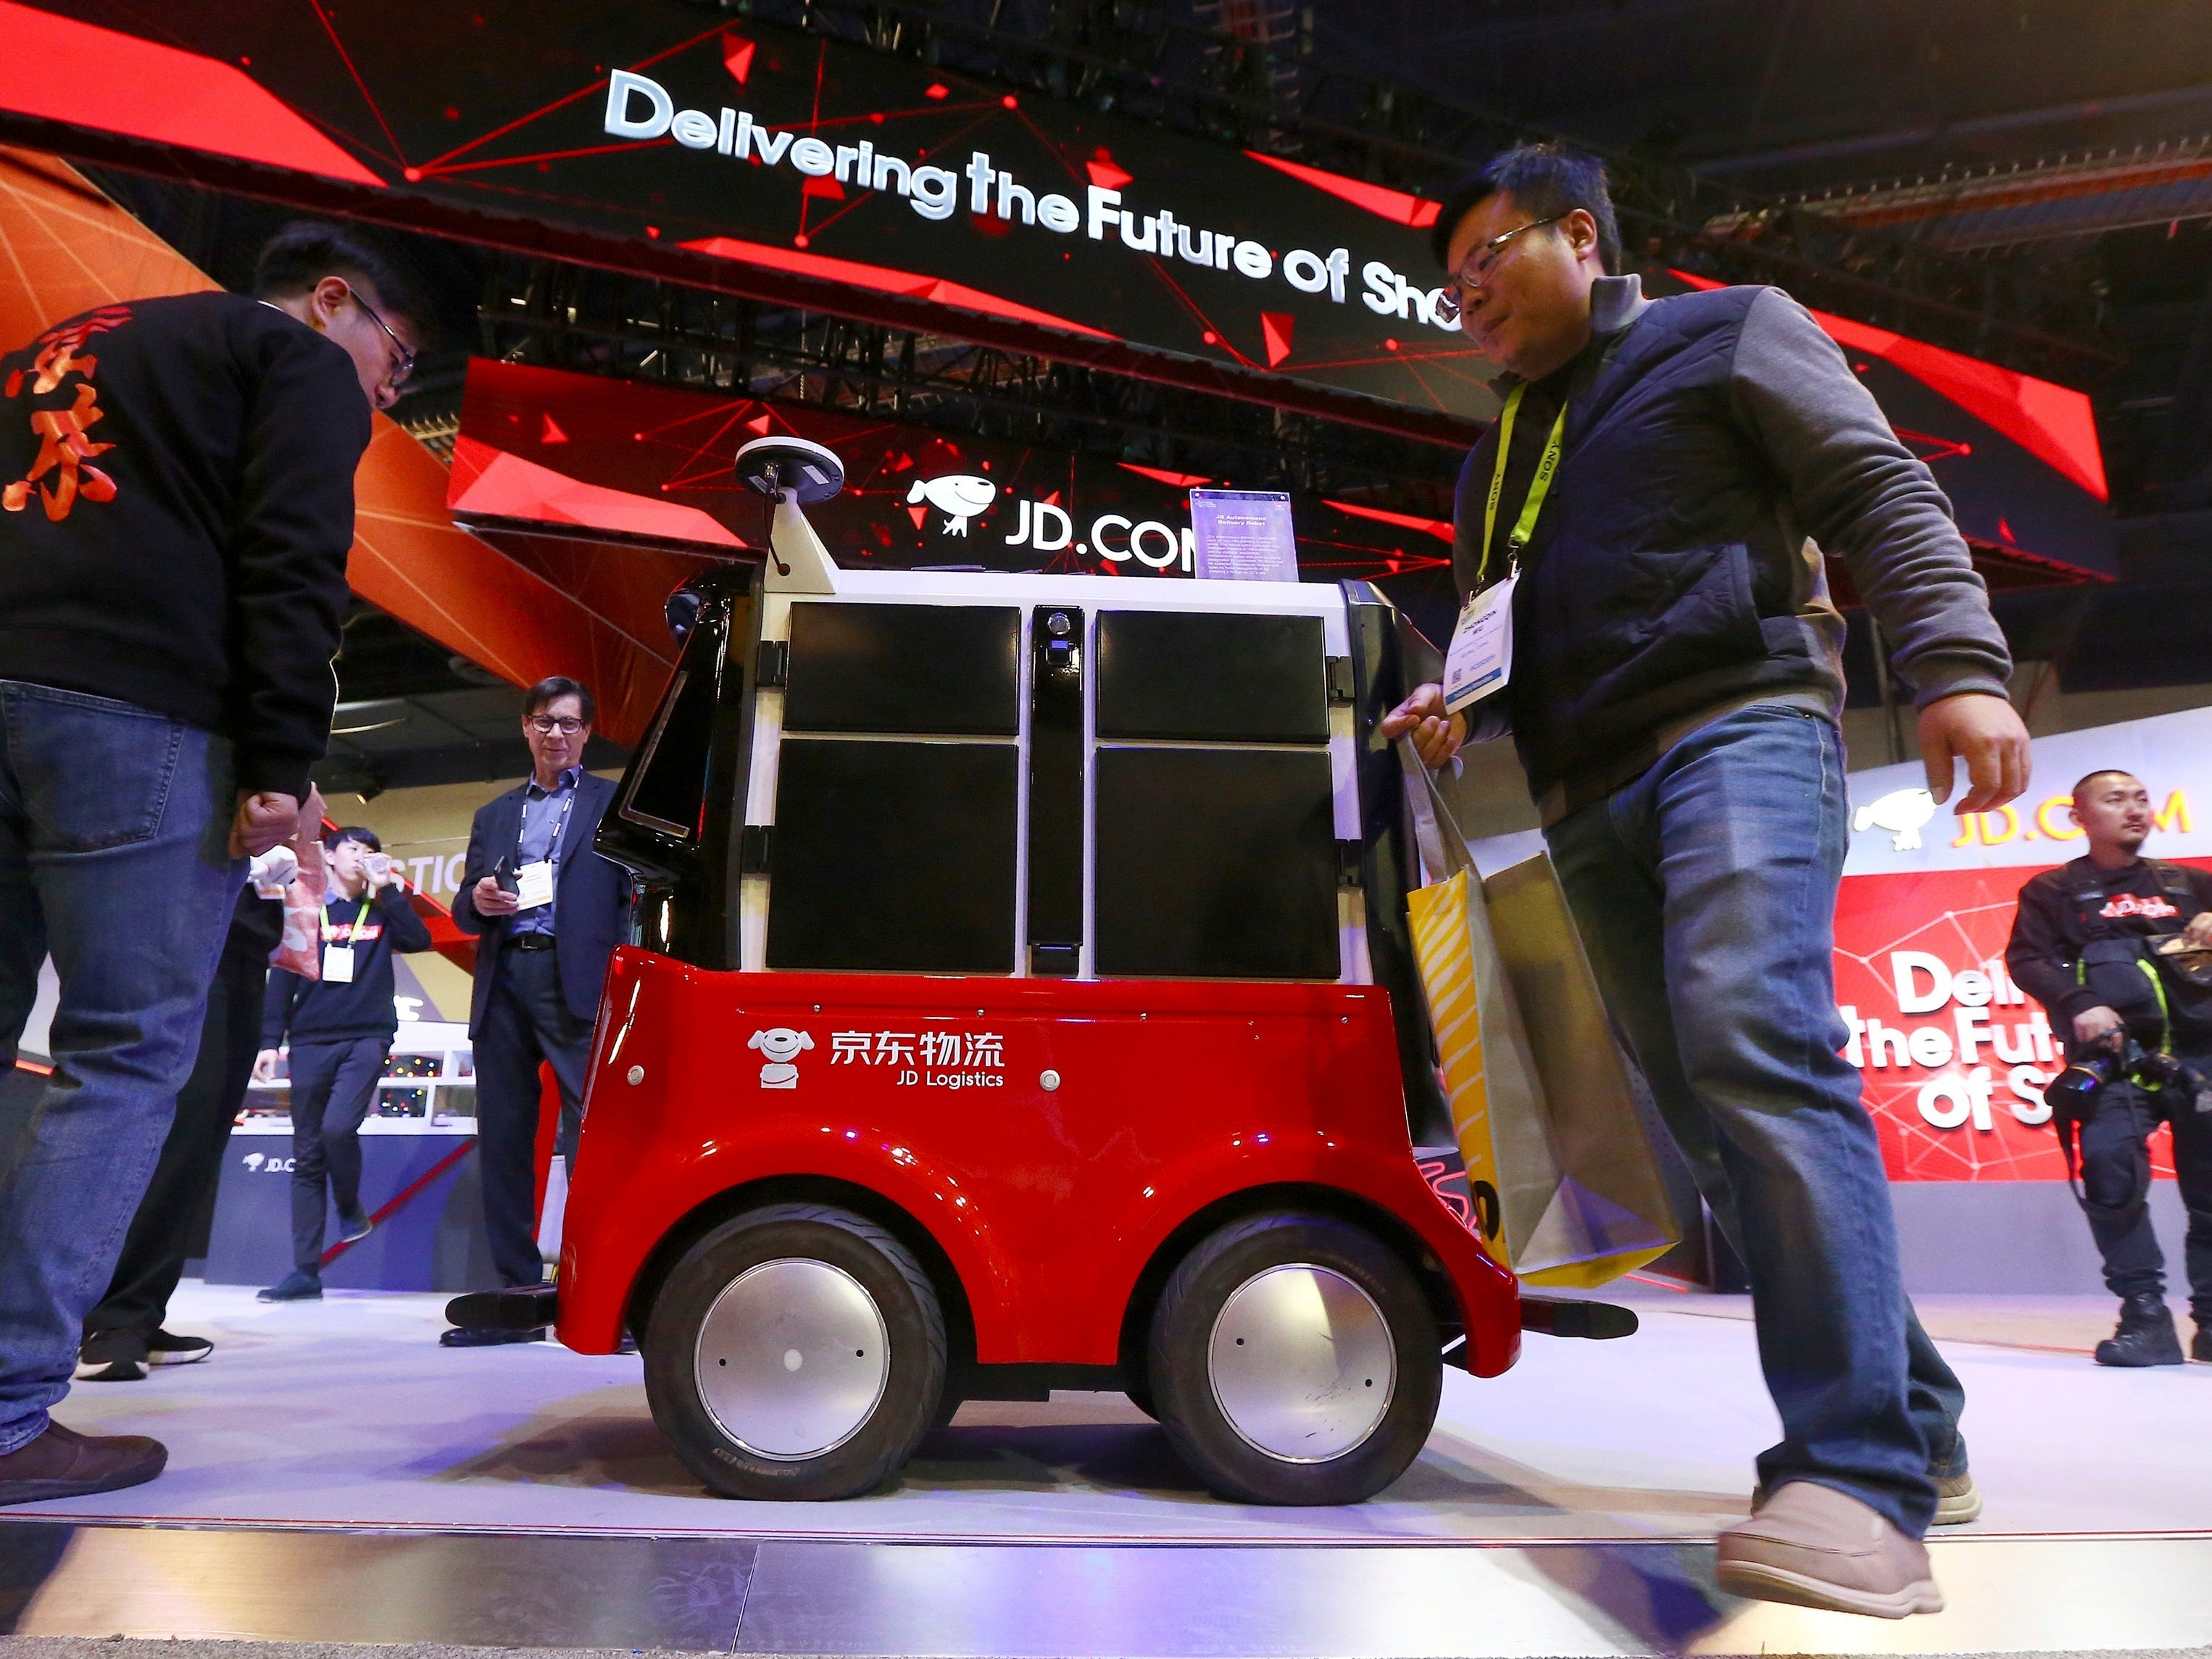 CES attendees check out the autonomous delivery robot vehicle.